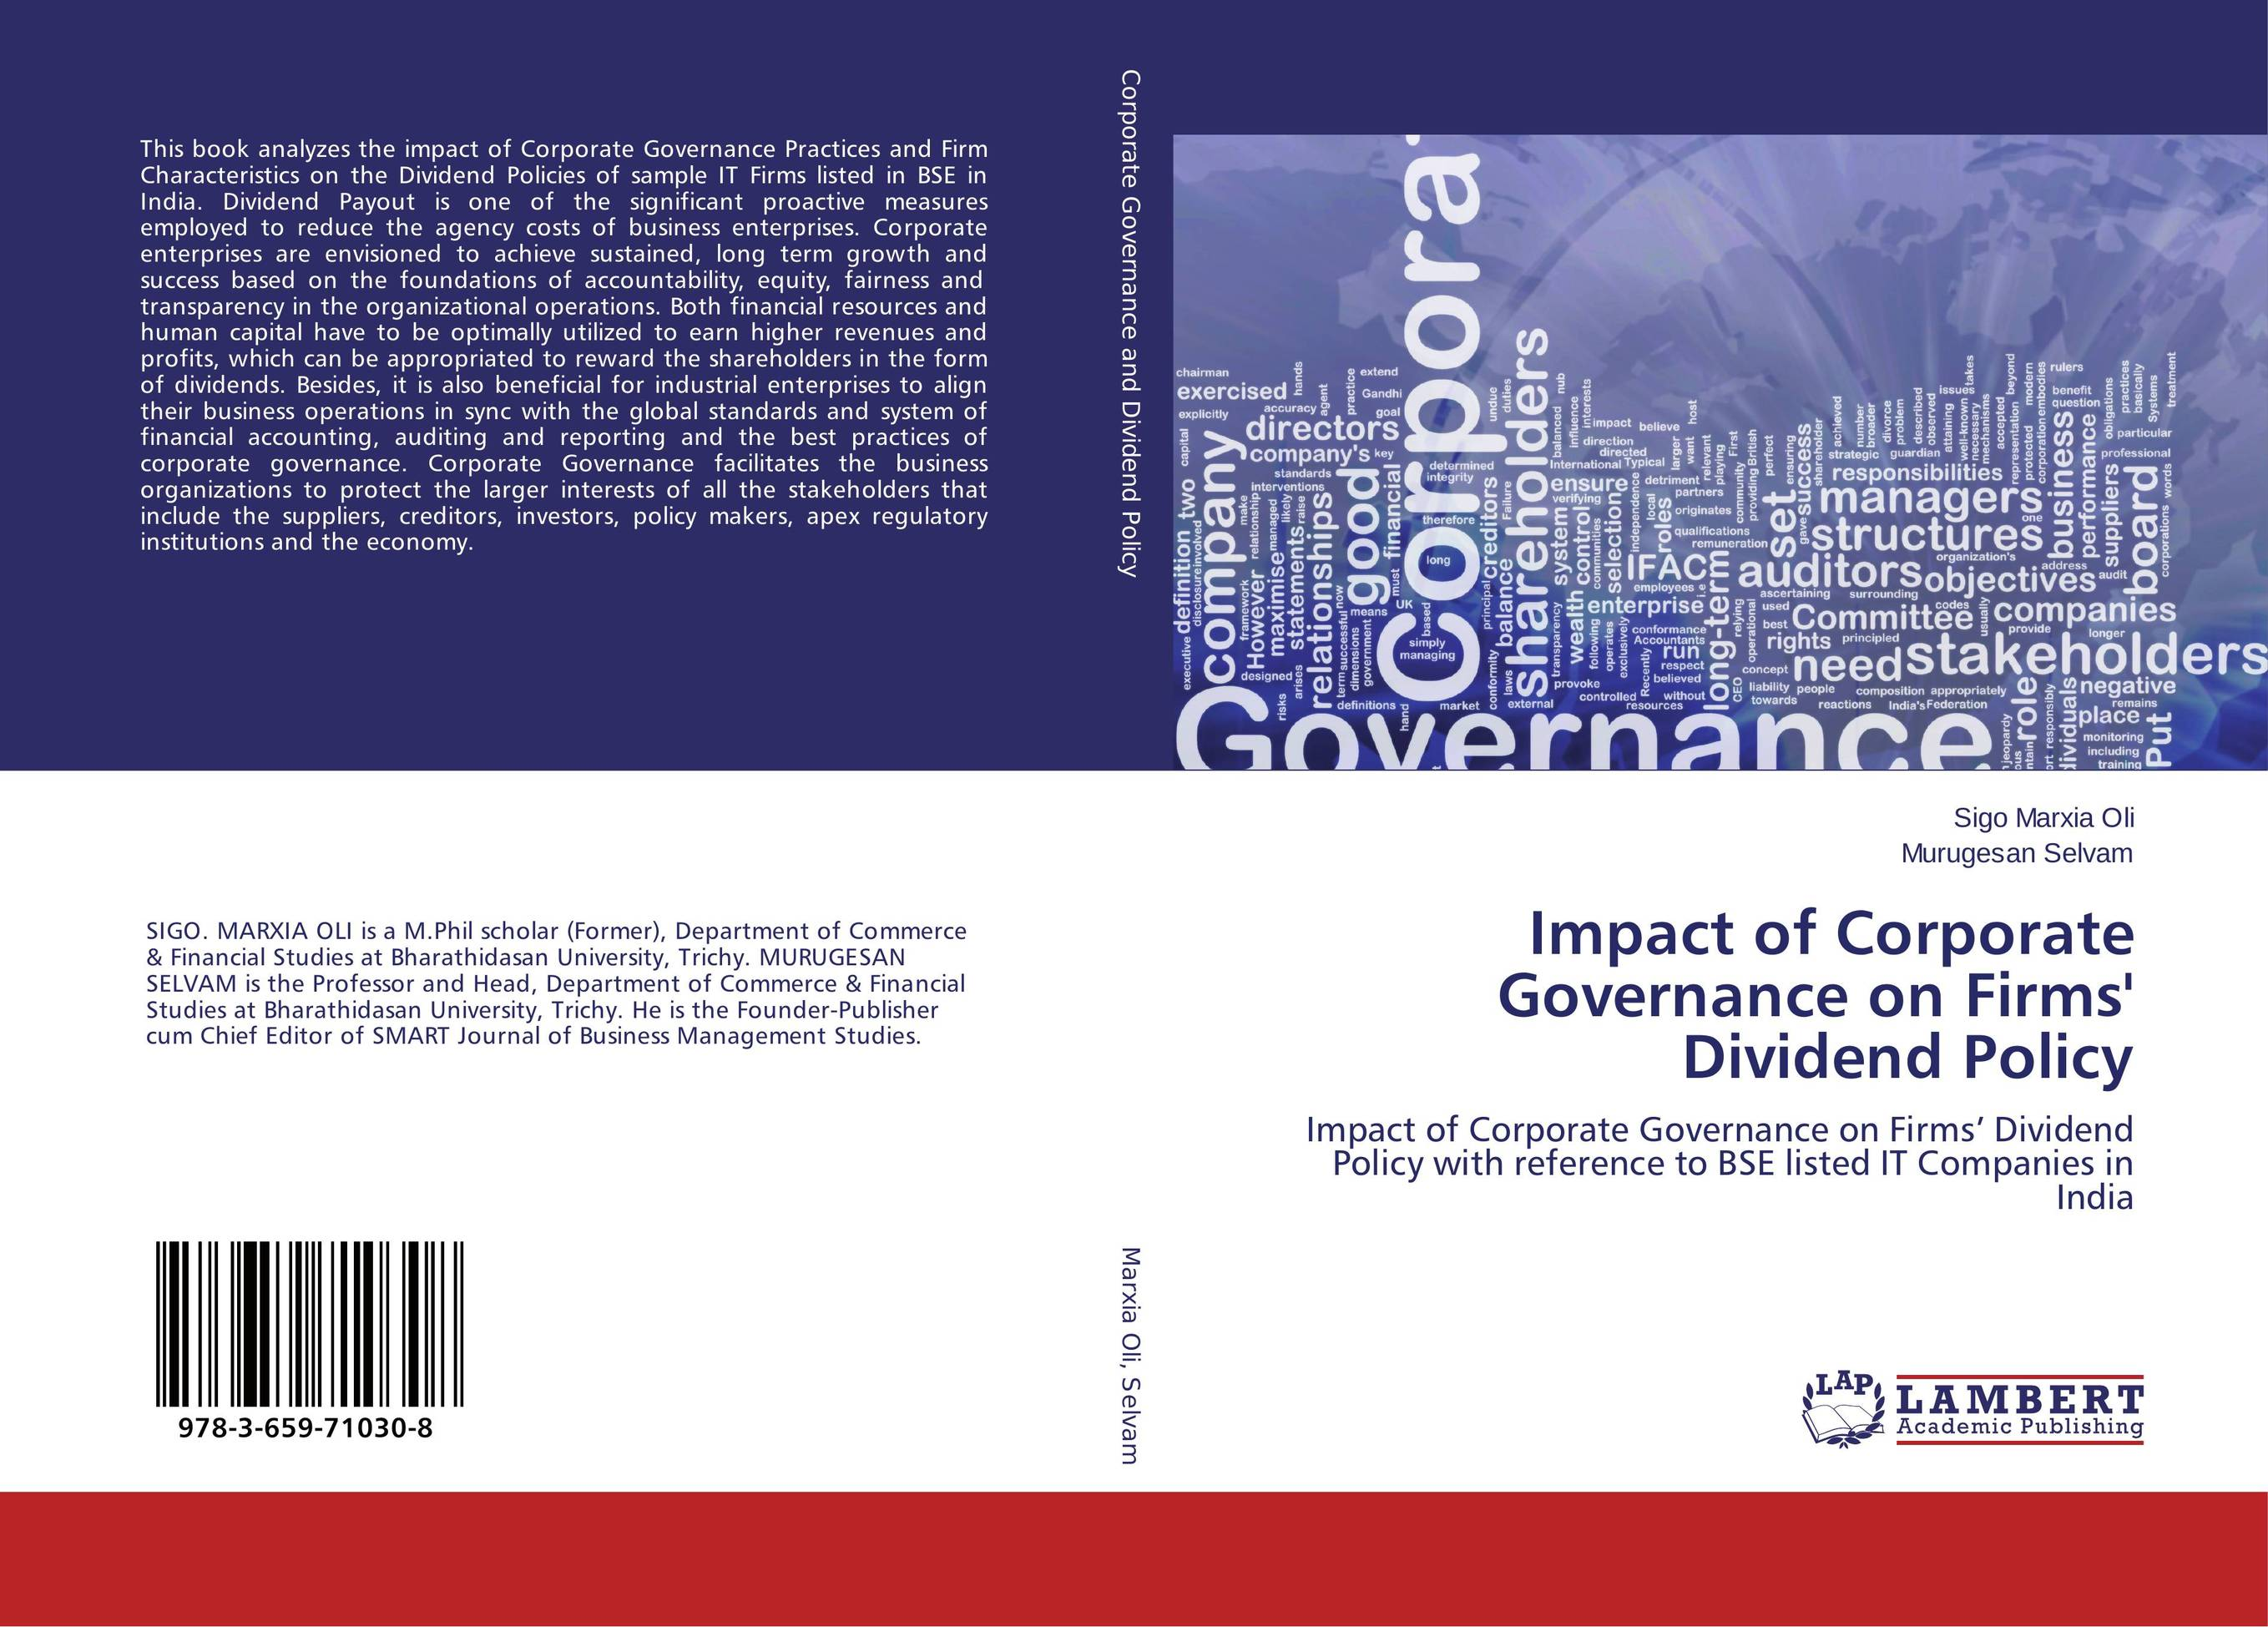 Impact of Corporate Governance on Firms' Dividend Policy dysfunctions in accounting and the role of corporate lobbying